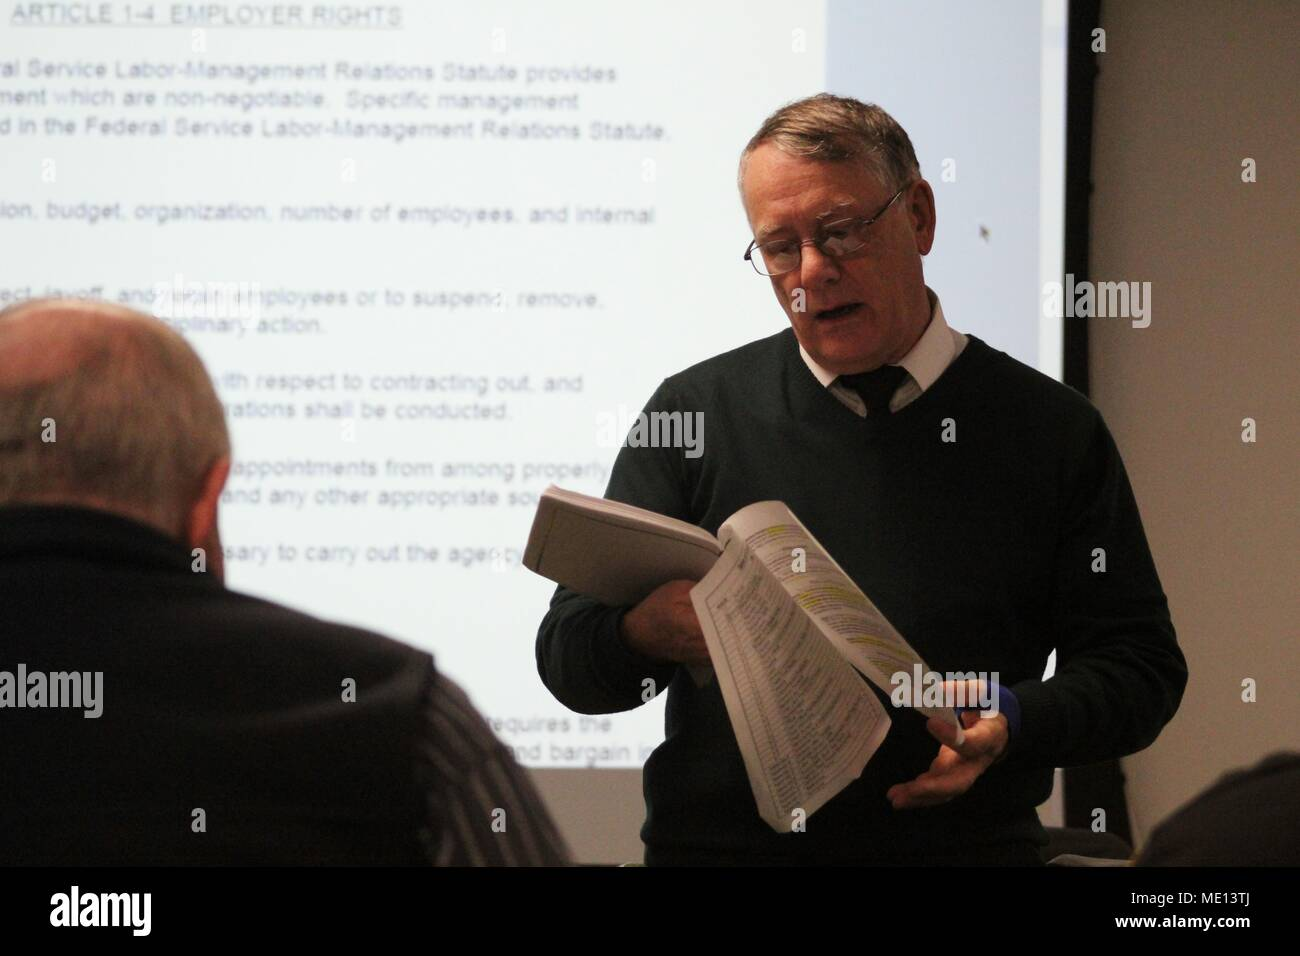 Directorate of Human Resources Director Terry Streeton conducts a training session with Fort McCoy workforce members about the installation's new union collective bargaining agreement Dec. 14, 2017, at Fort McCoy, Wis. The new agreement was finalized earlier in 2017 and the Directorate of Human Resources has held numerous training sessions for employees to help everyone gain a full understanding of what is in the agreement. (U.S. Army Photo by Scott T. Sturkol, Public Affairs Office, Fort McCoy, Wis.) - Stock Image